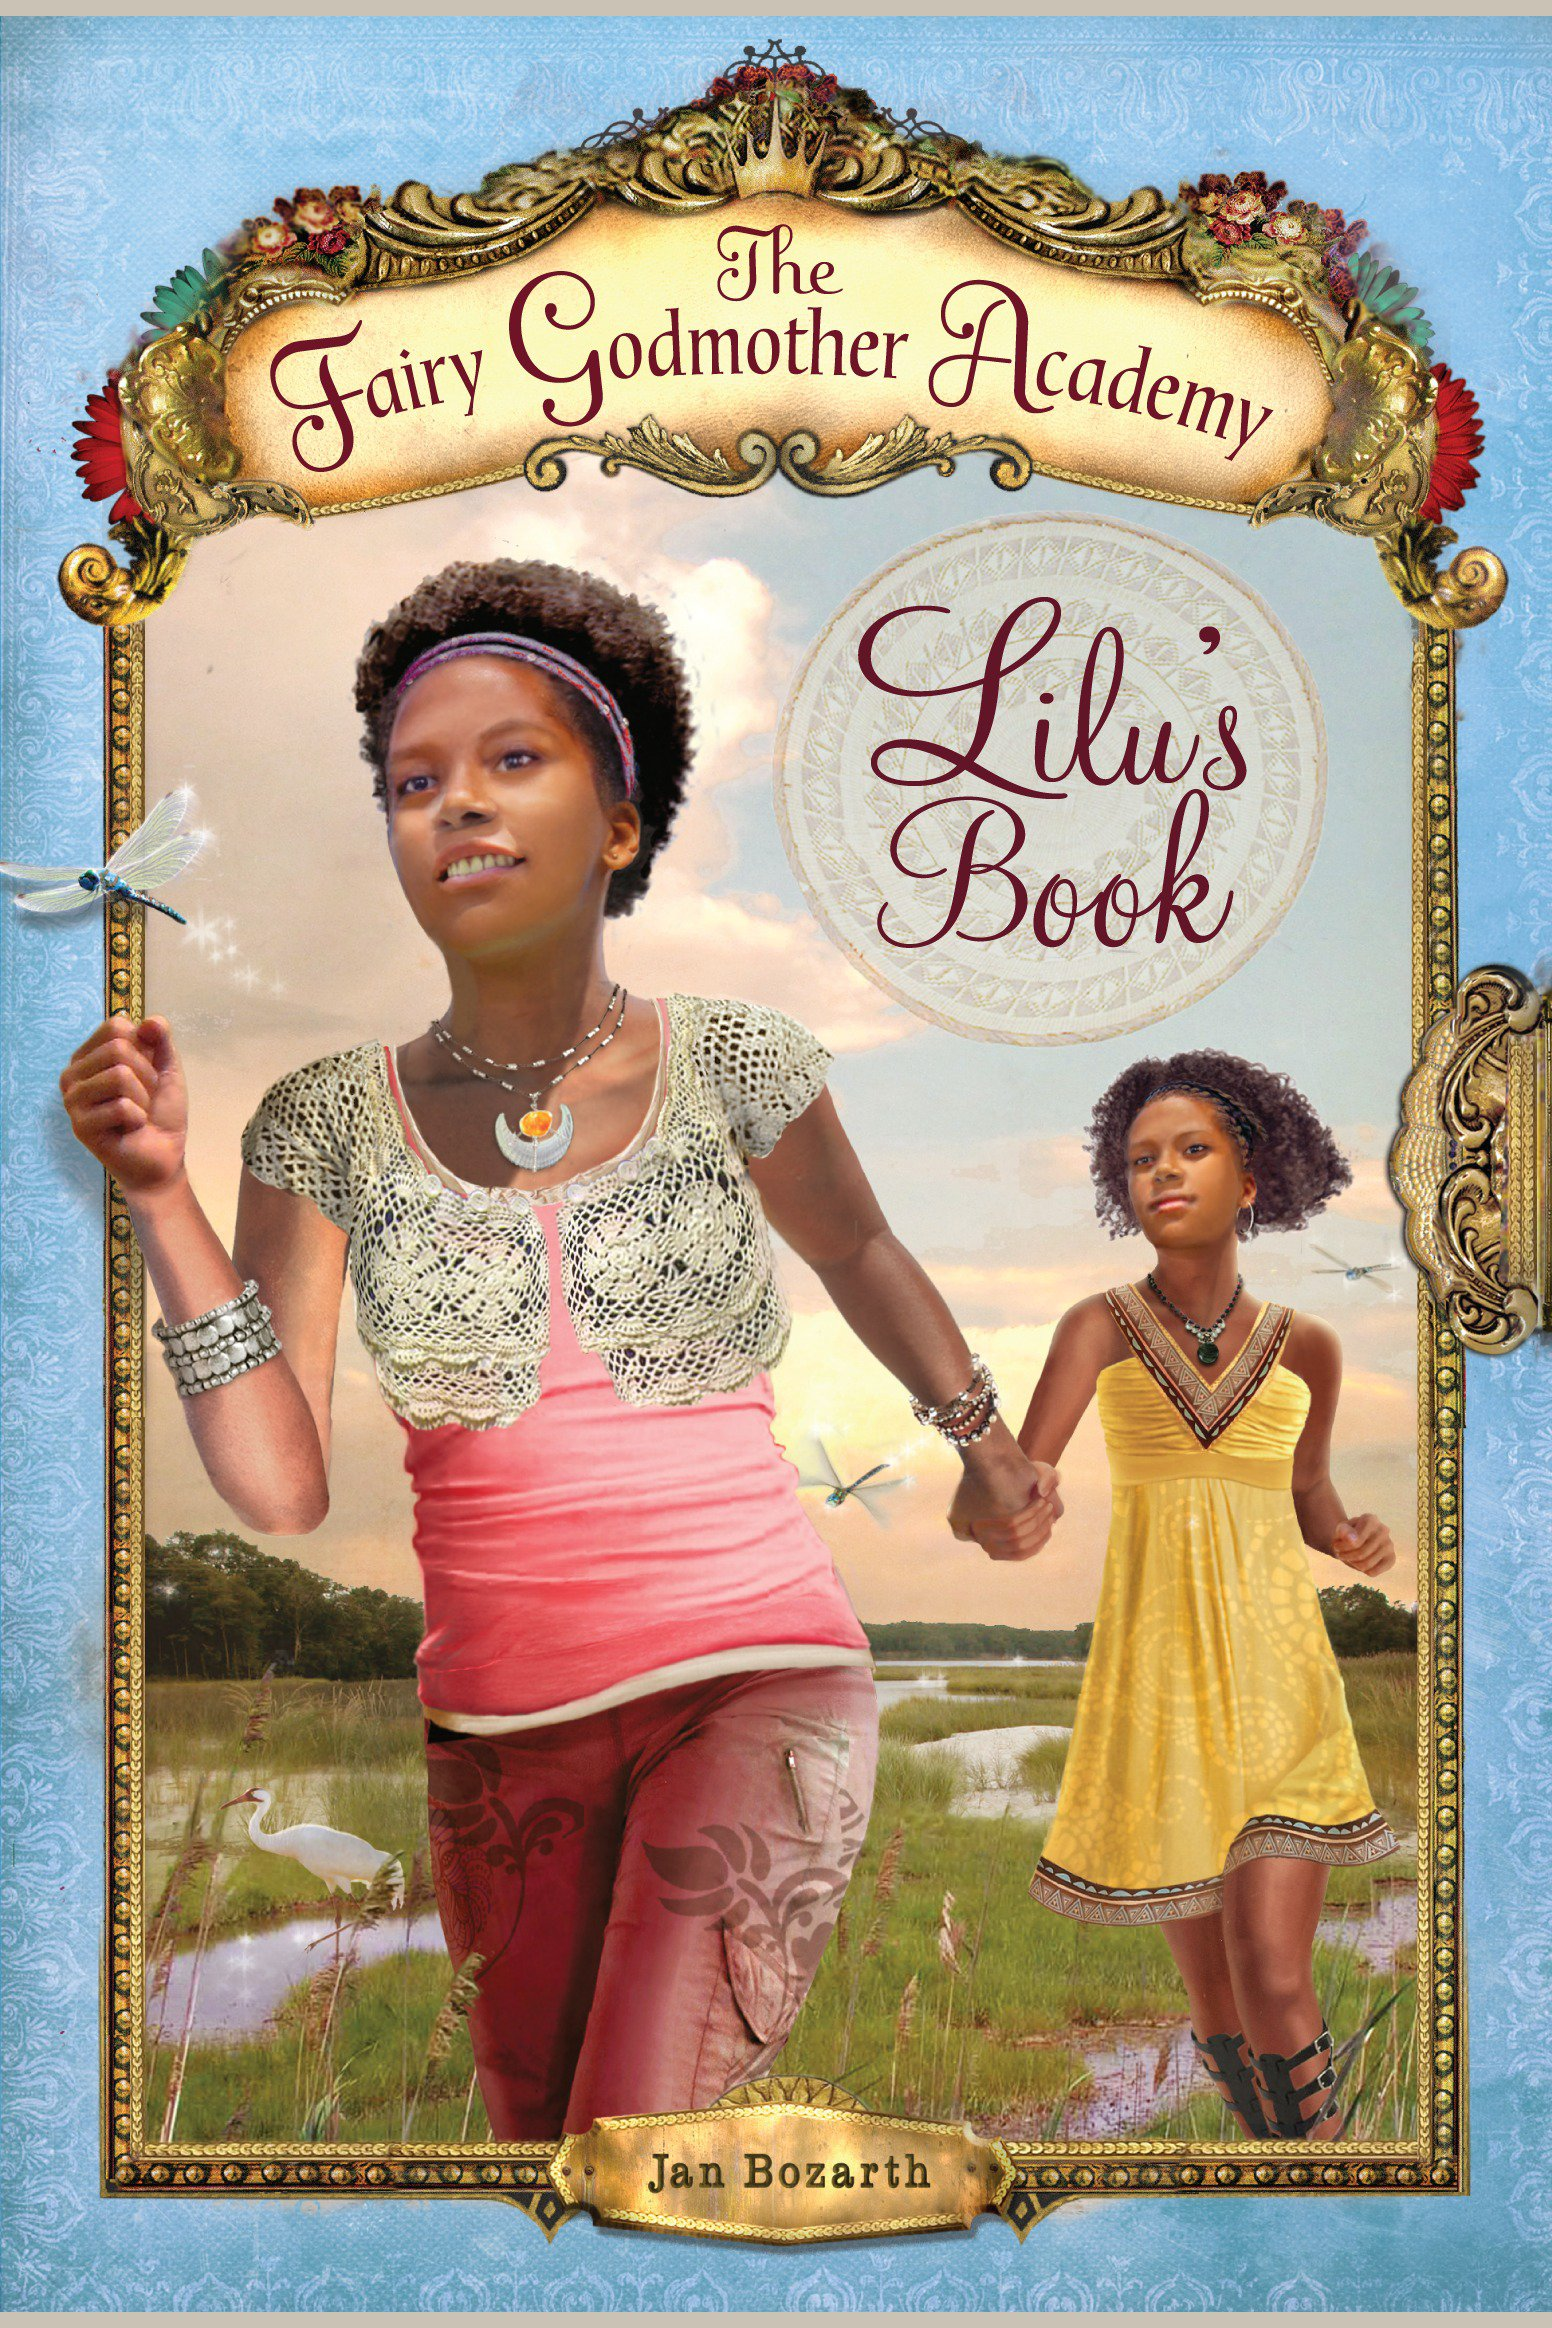 Lilu's Book cover image